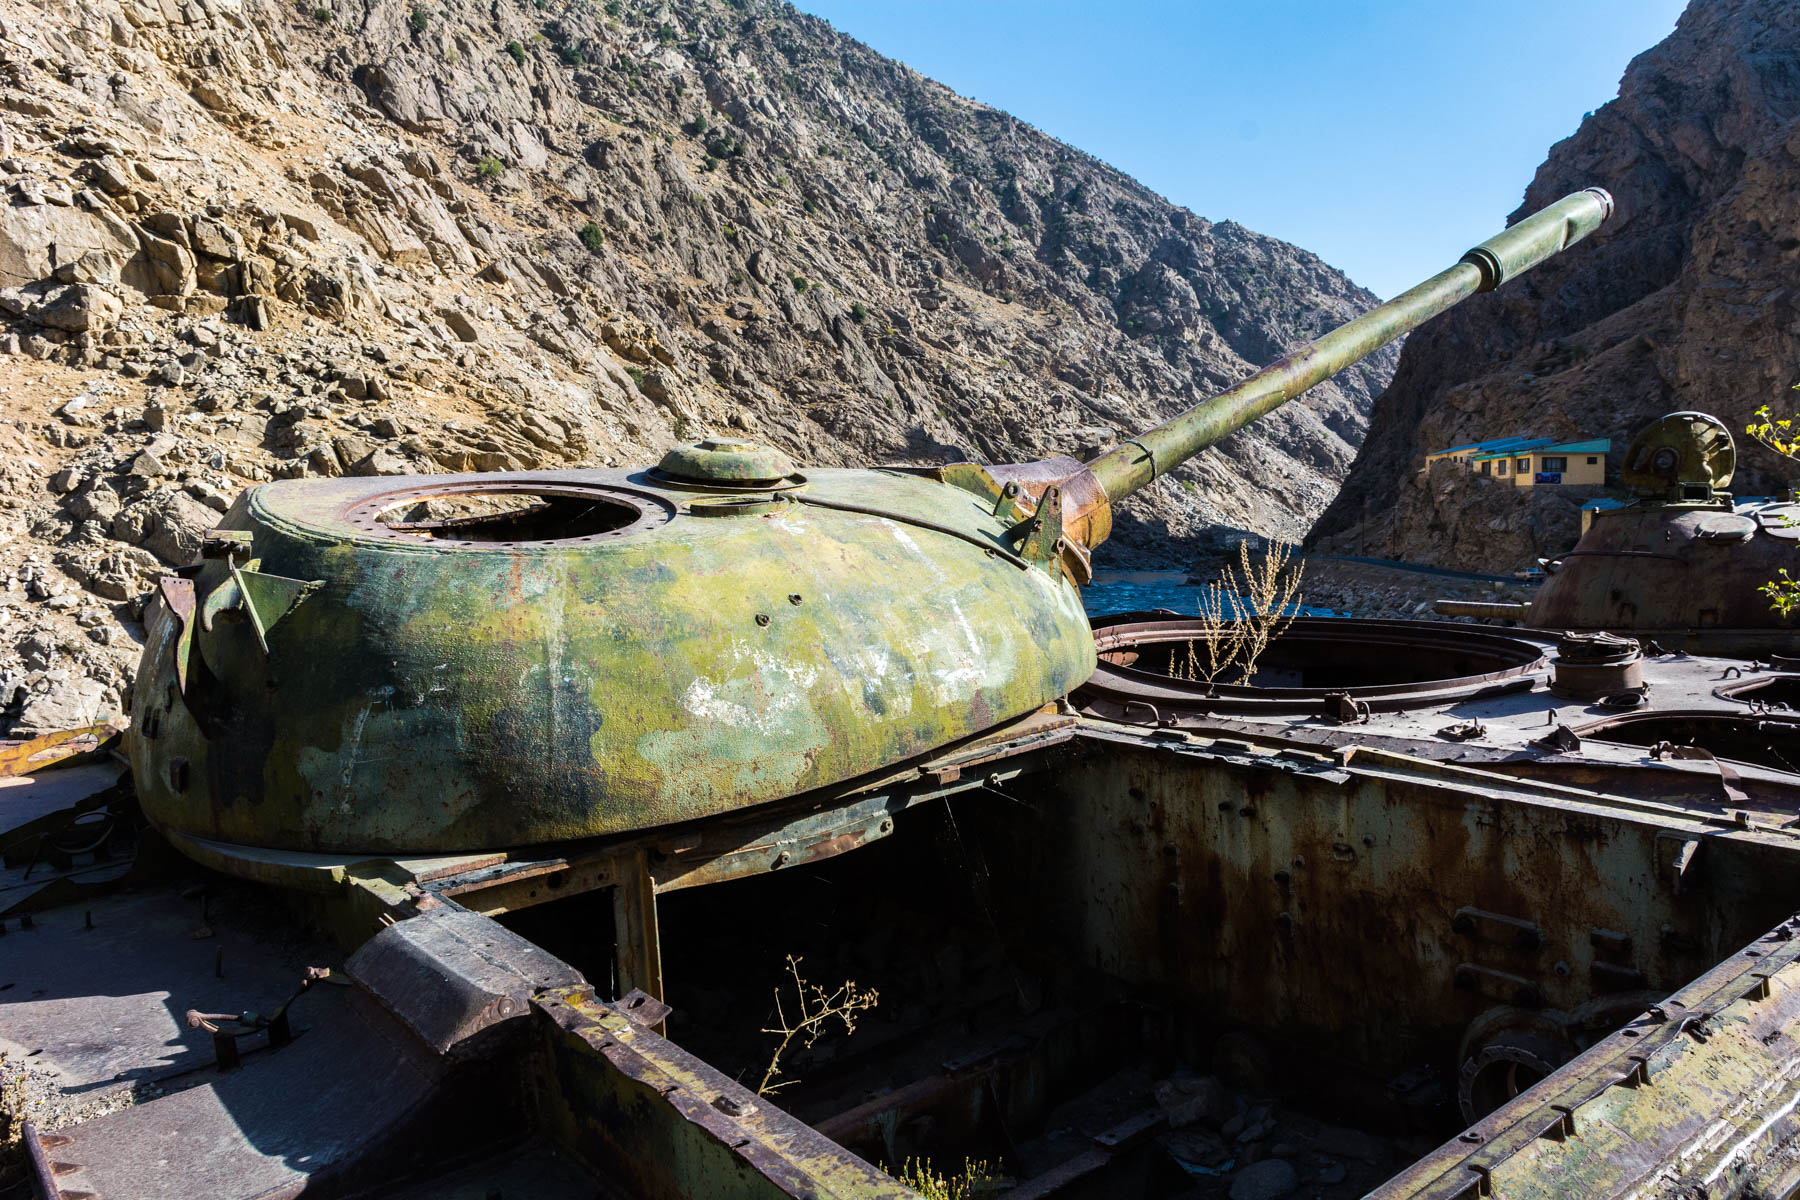 A destroyed tank in the Panjshir Valley in Afghanistan